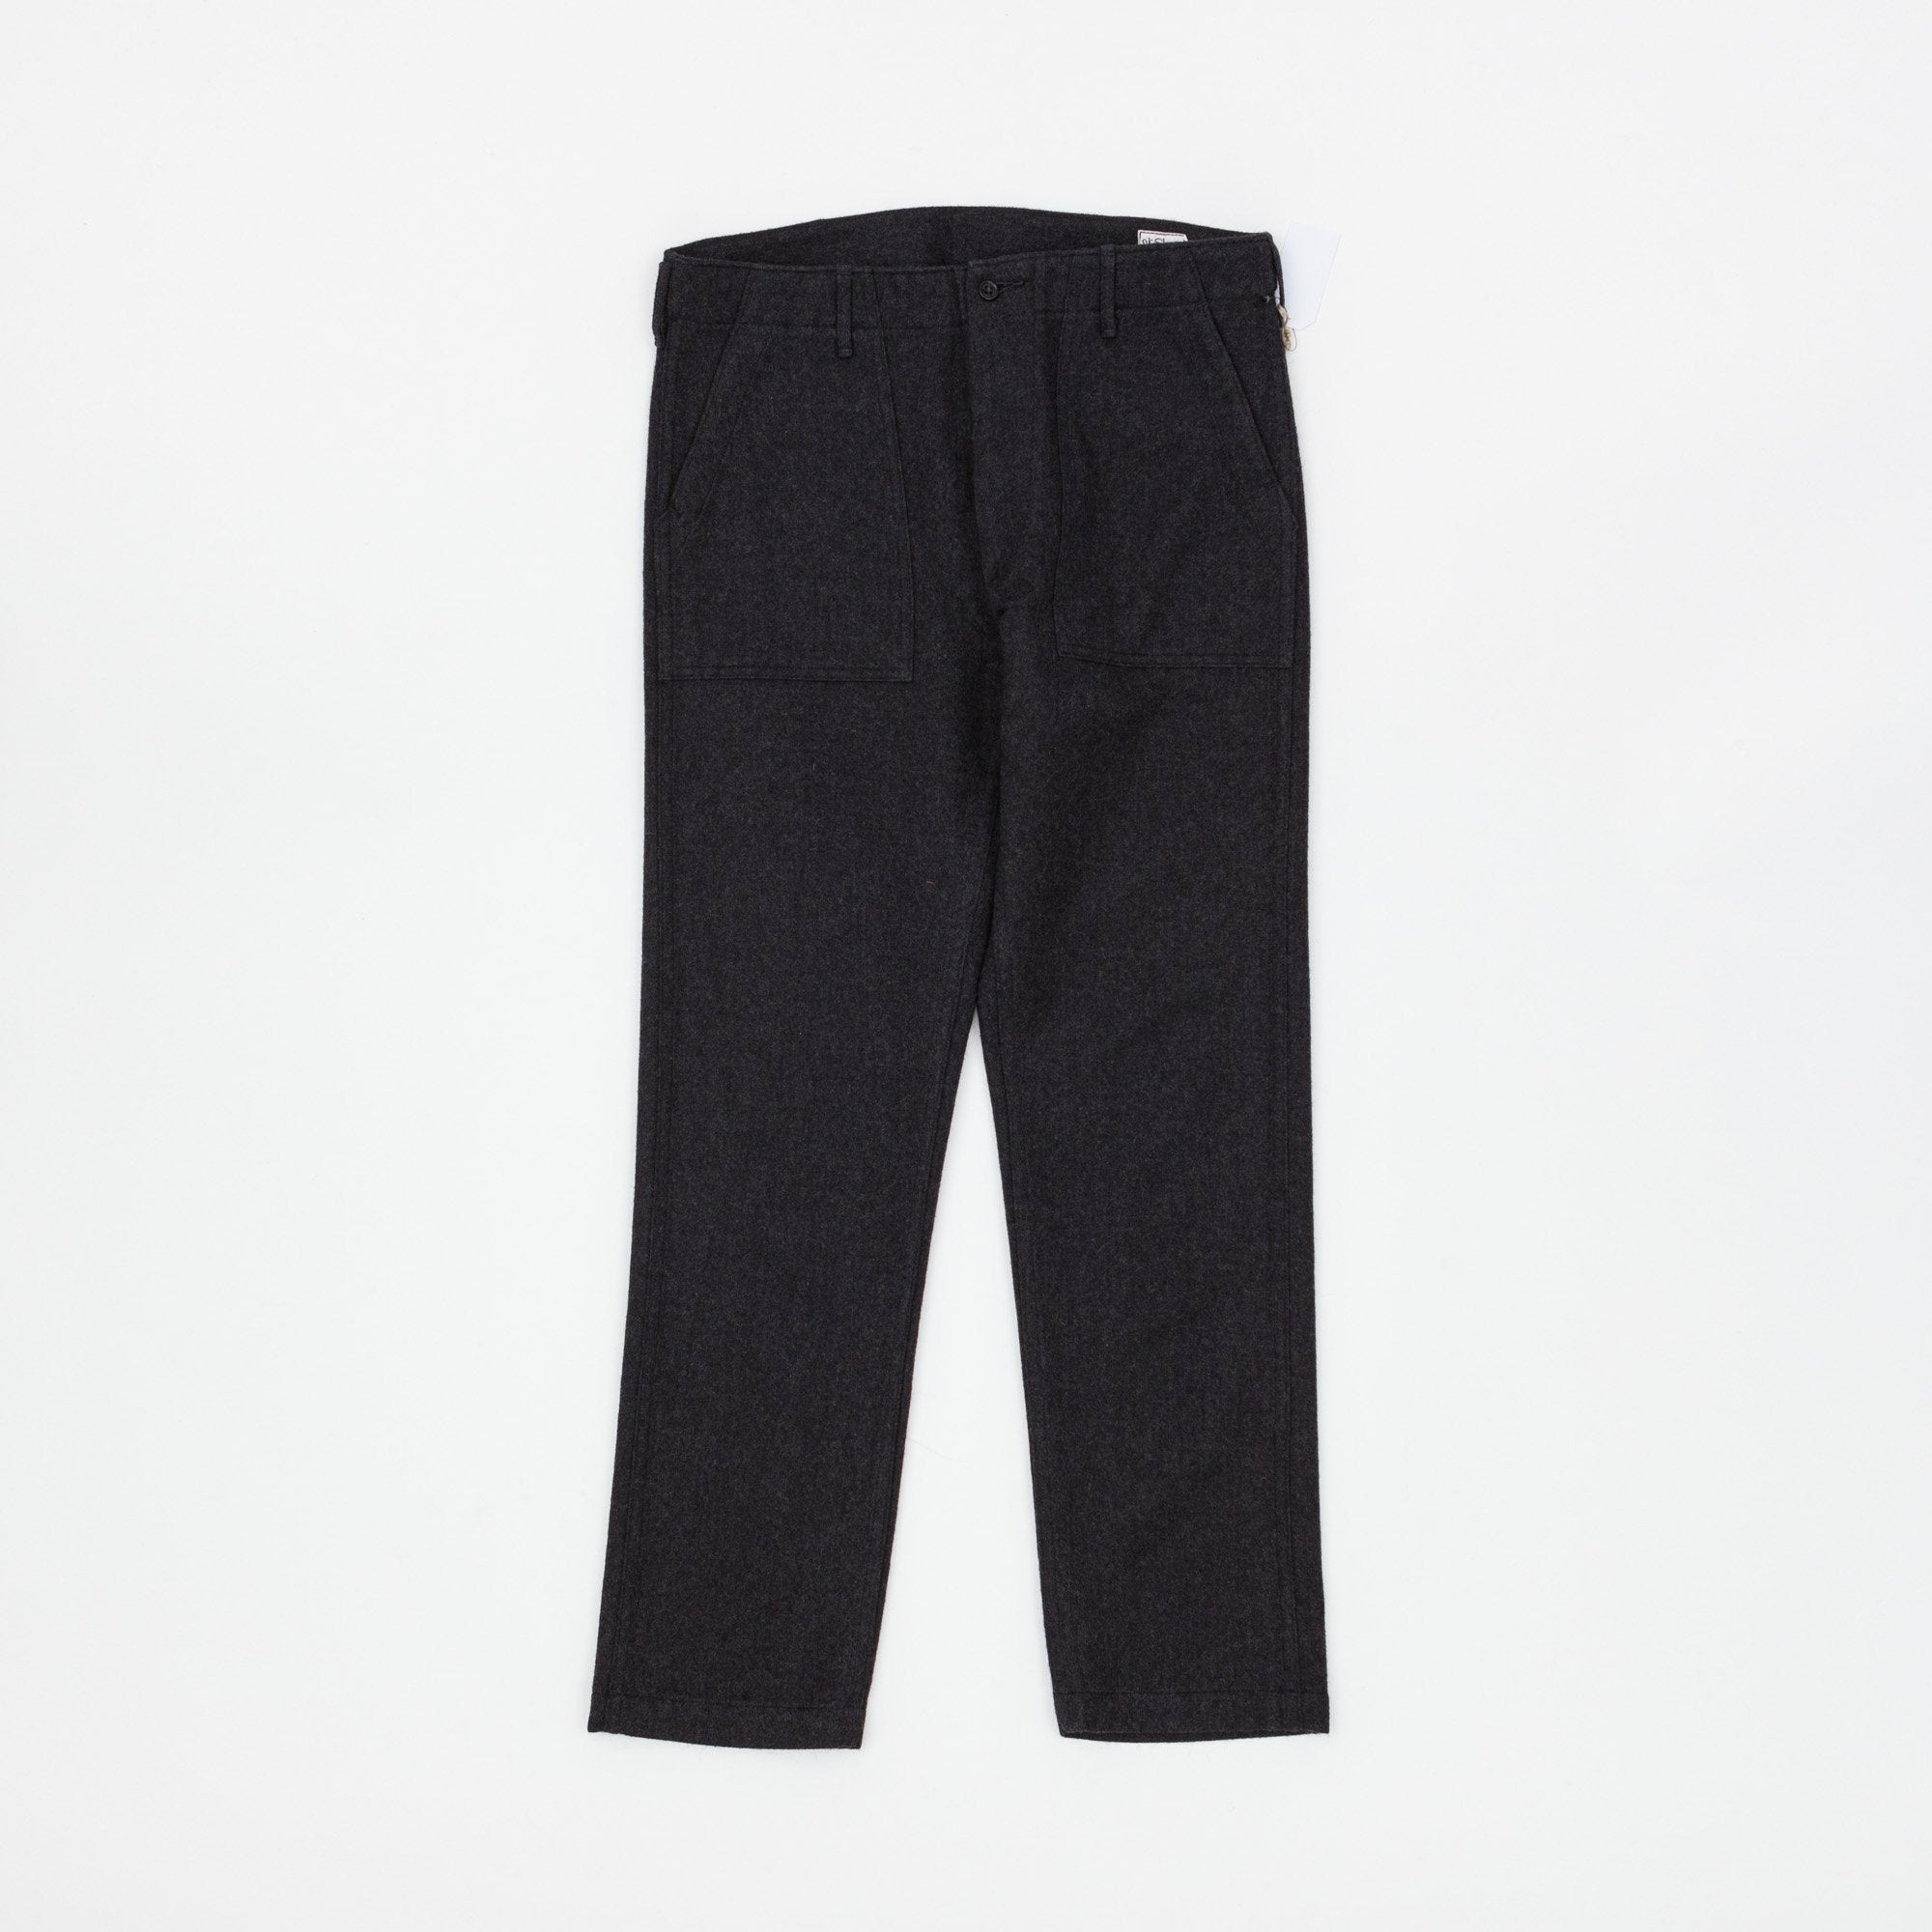 Orslow Wool Fatigue Pant